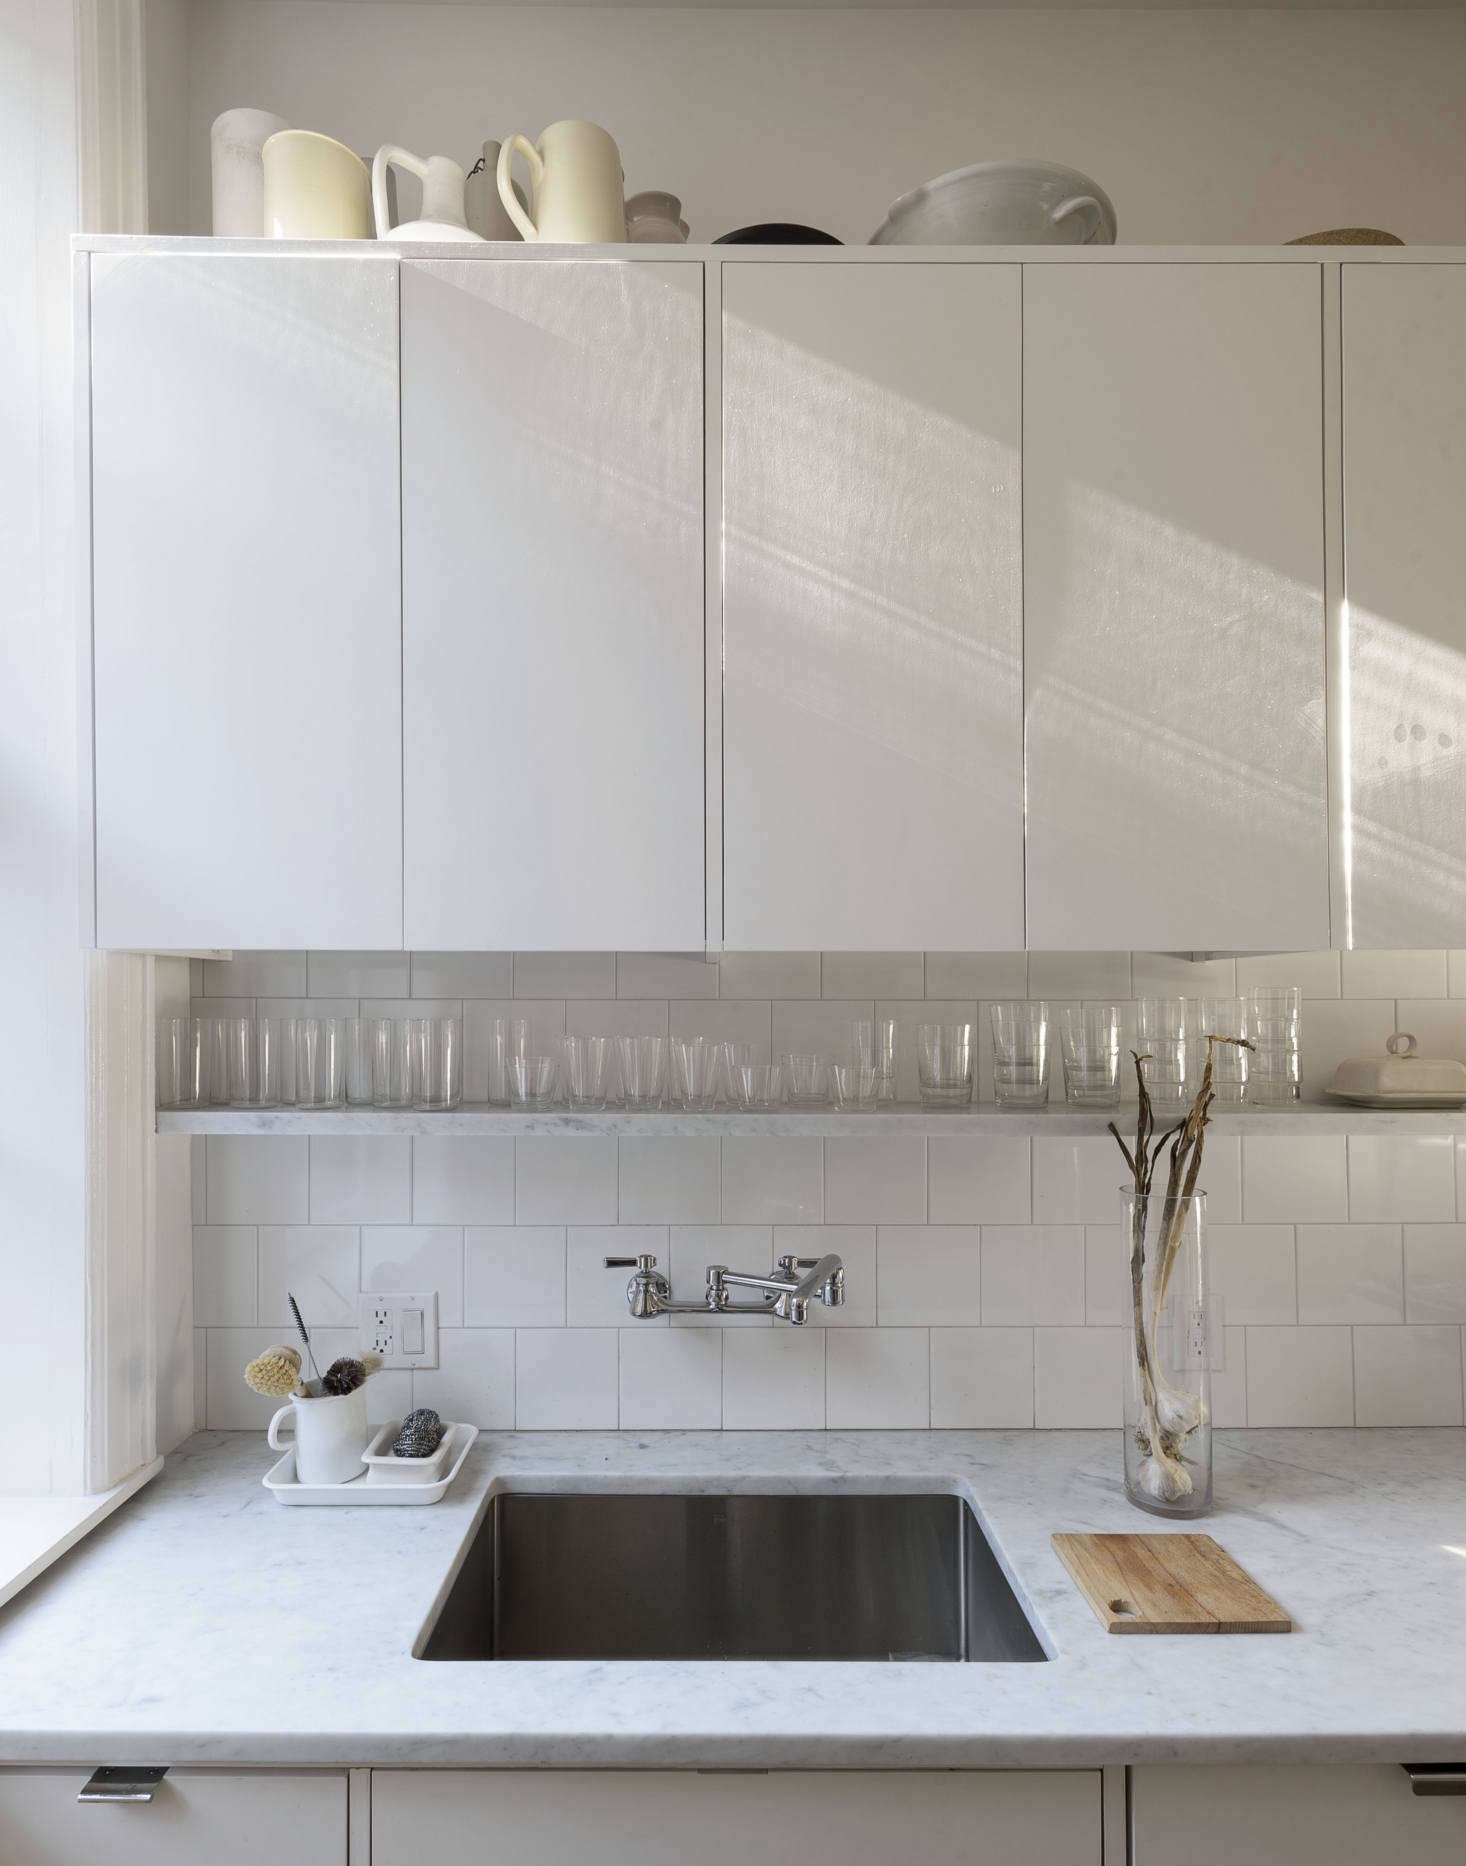 We turned to Brooklyn-based Jeremy Pickett of Pickett Furniture (one of our earliest Remodelista advertisers, back in the late aughts) for the minimally detailed cabinets. The countertops are Carrara marble. (For countertop guidance, see our post Remodeling src=